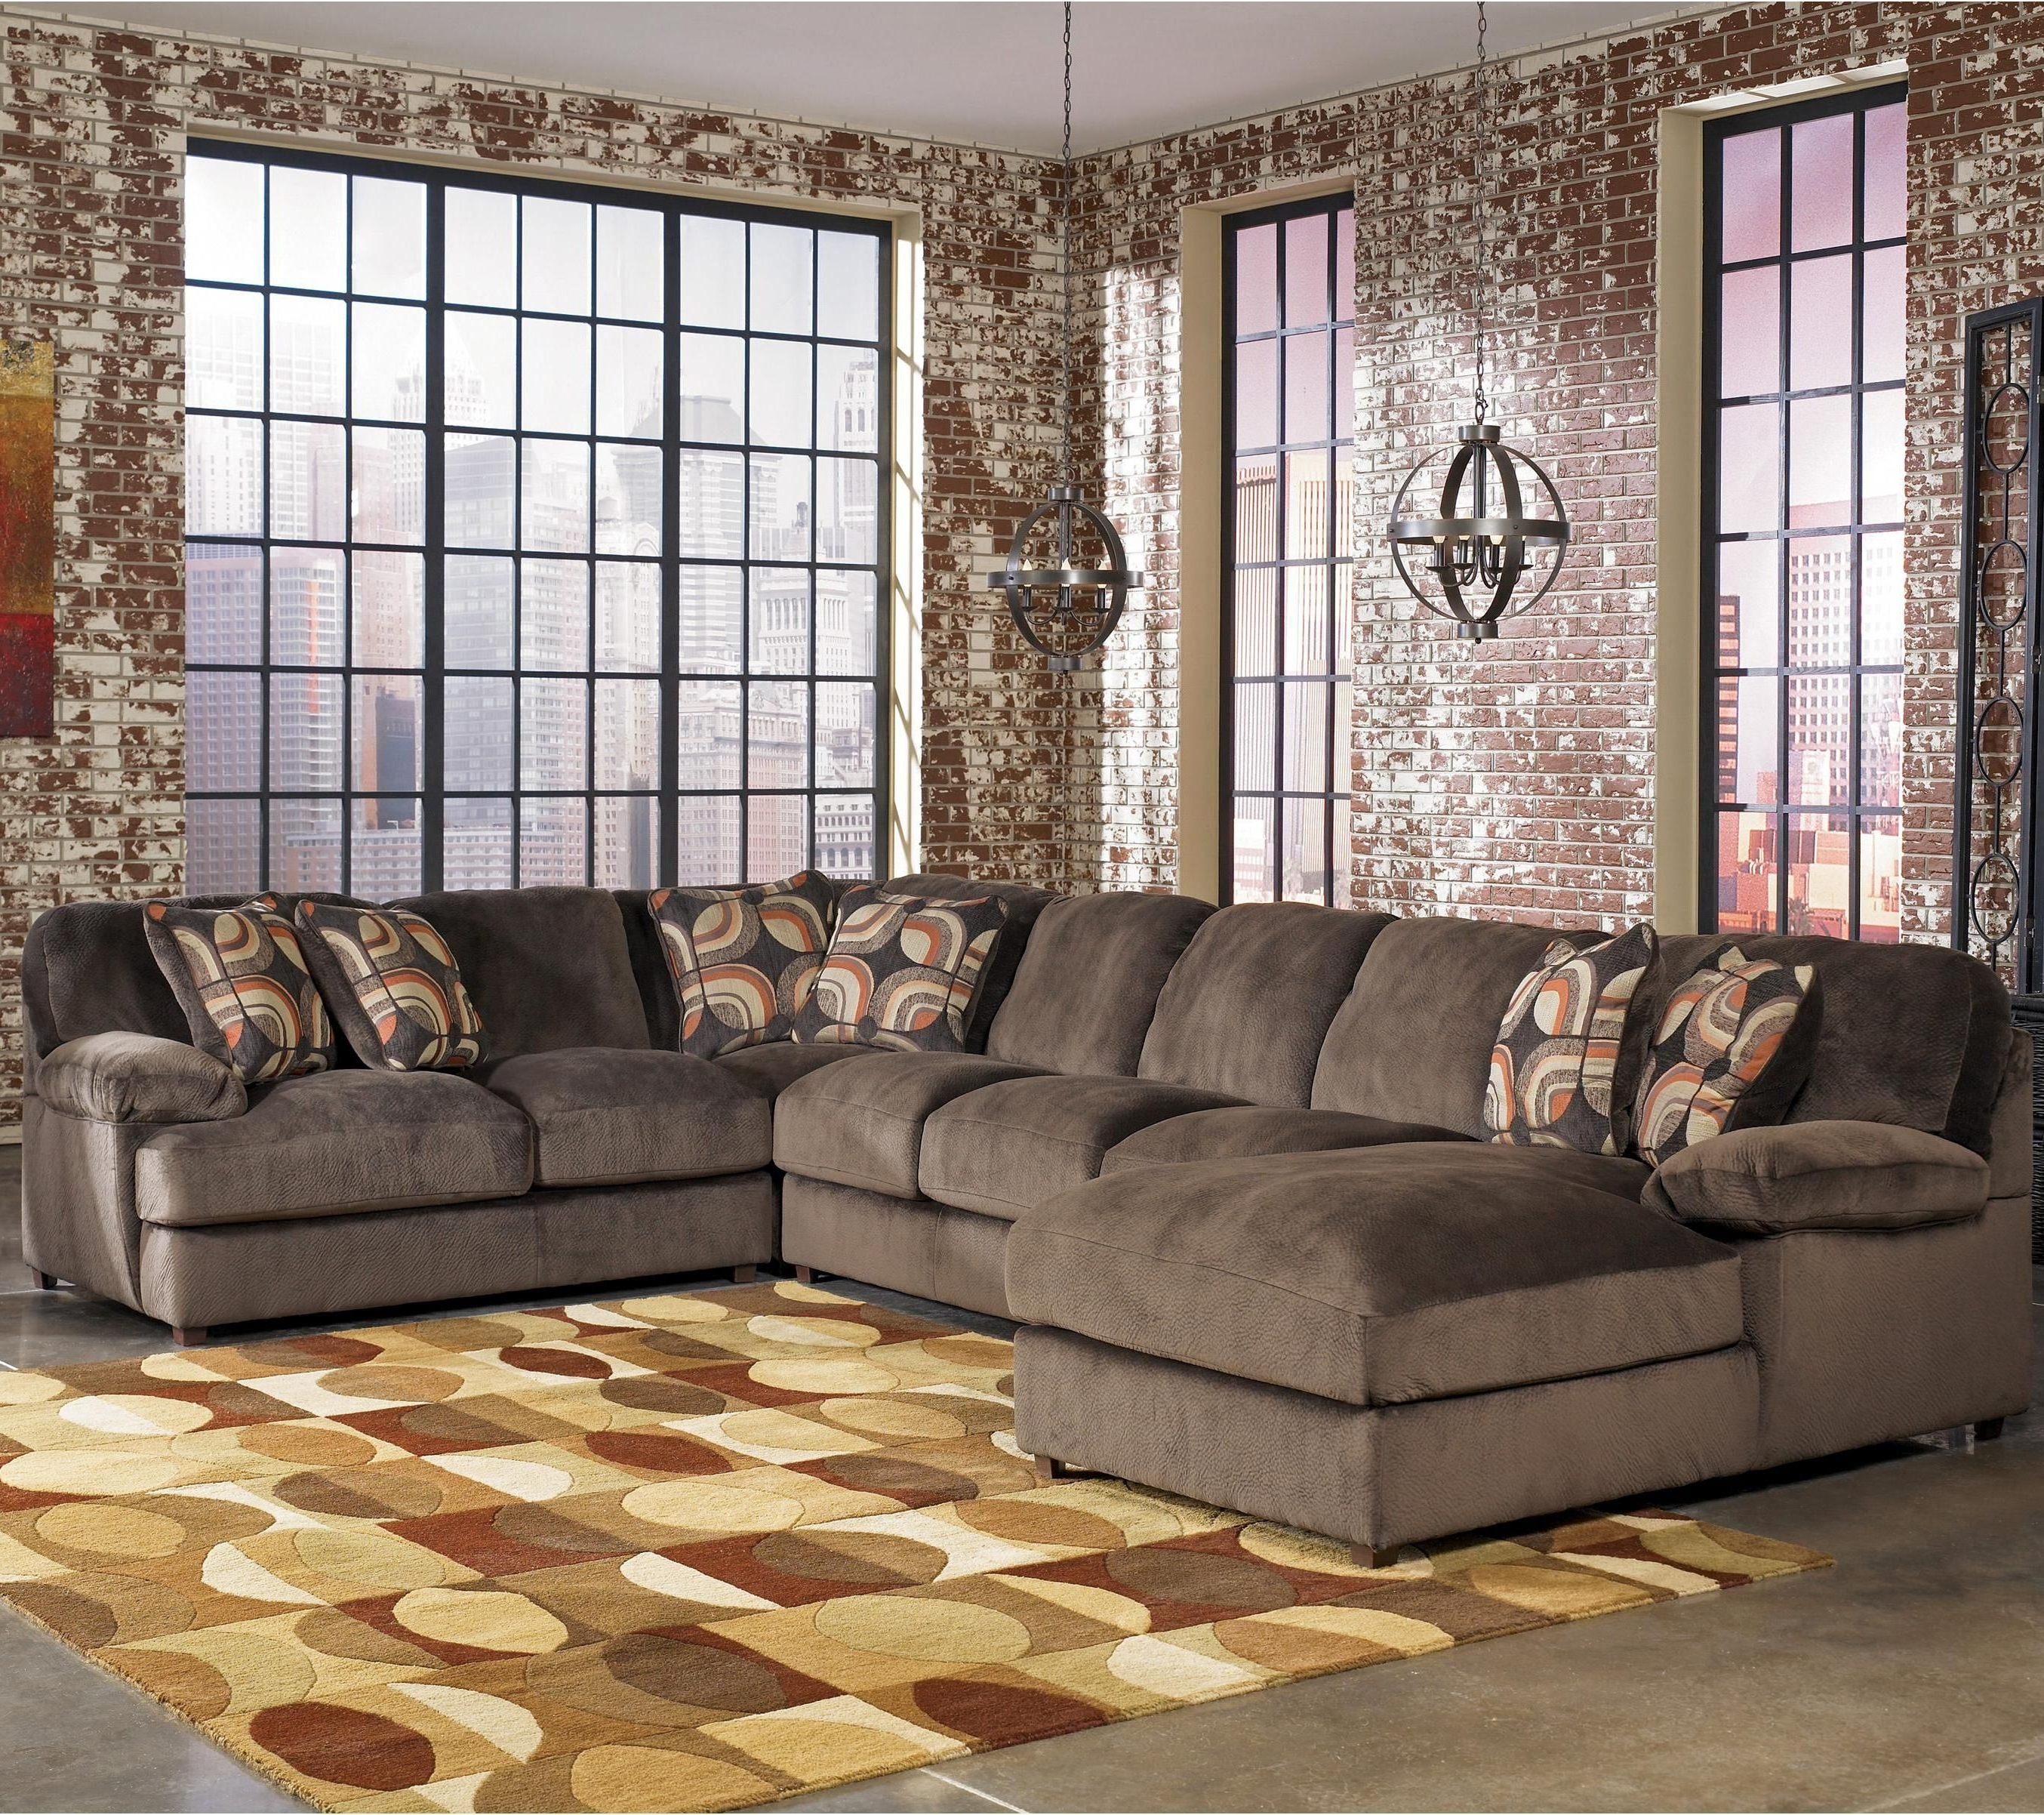 Flood Moultrie In Murfreesboro Tn Sectional Sofas (View 7 of 20)